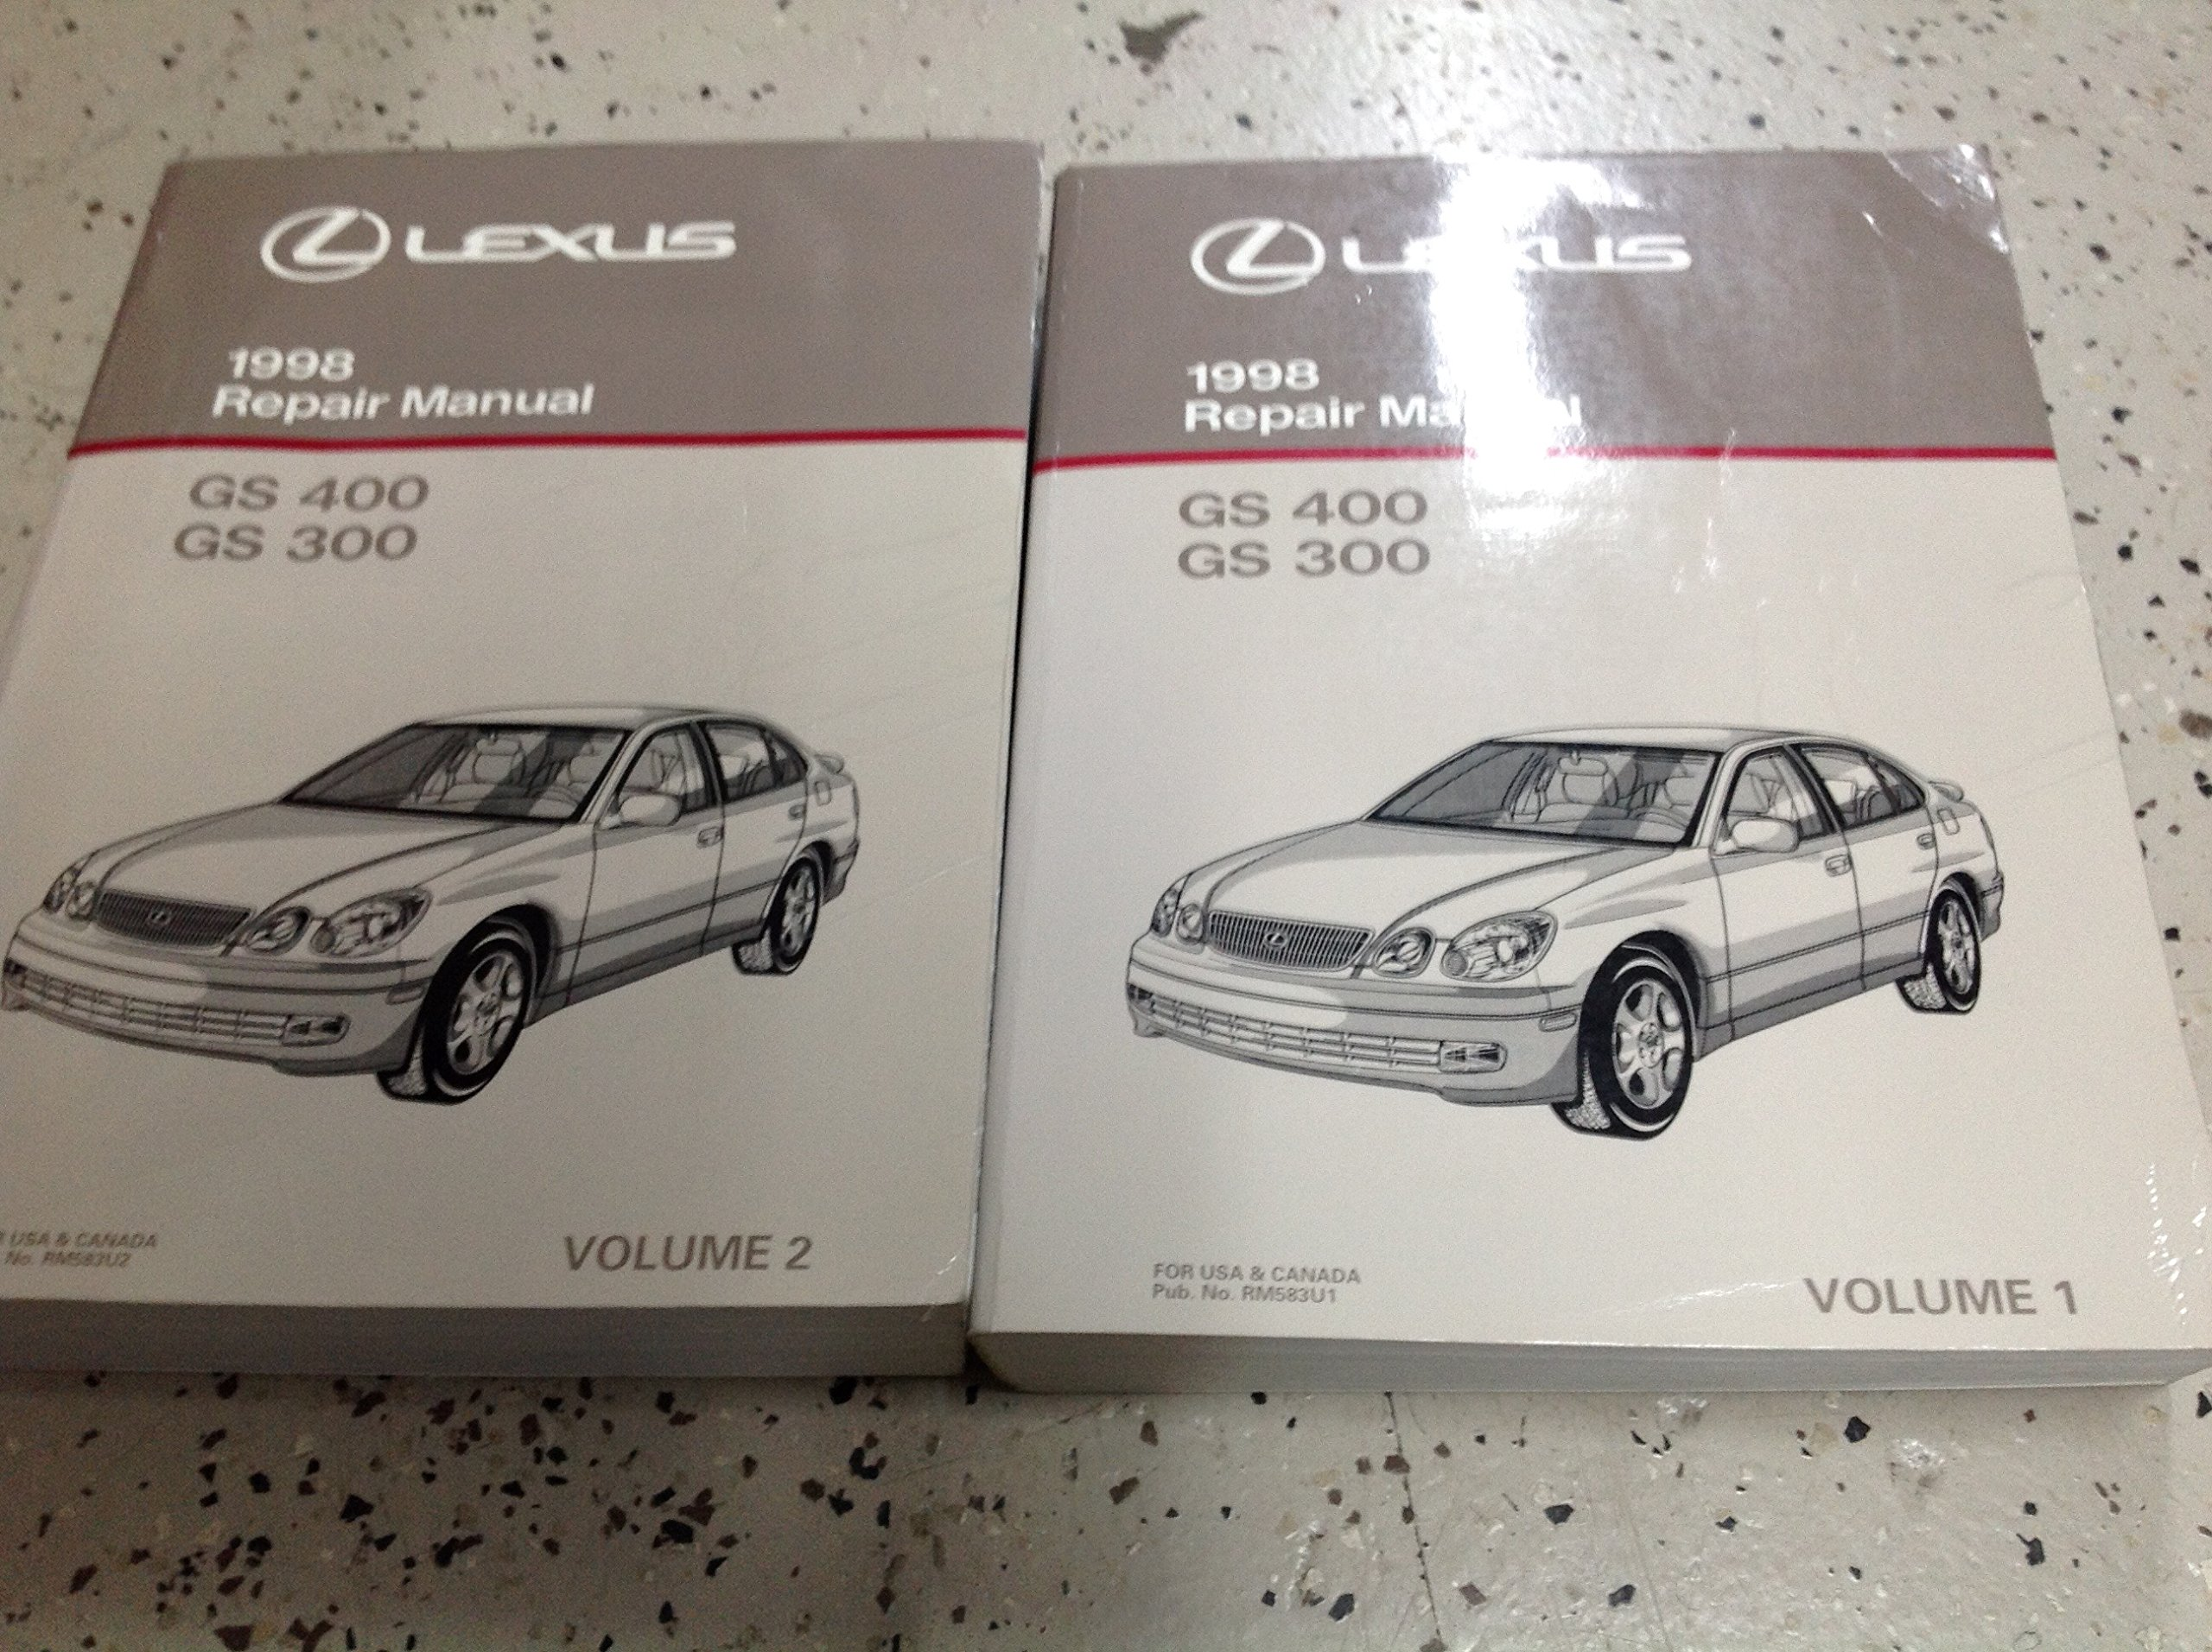 1998 LEXUS GS400 GS300 Workshop Service Shop Repair Workshop Manual Set:  Toyota: Amazon.com: Books